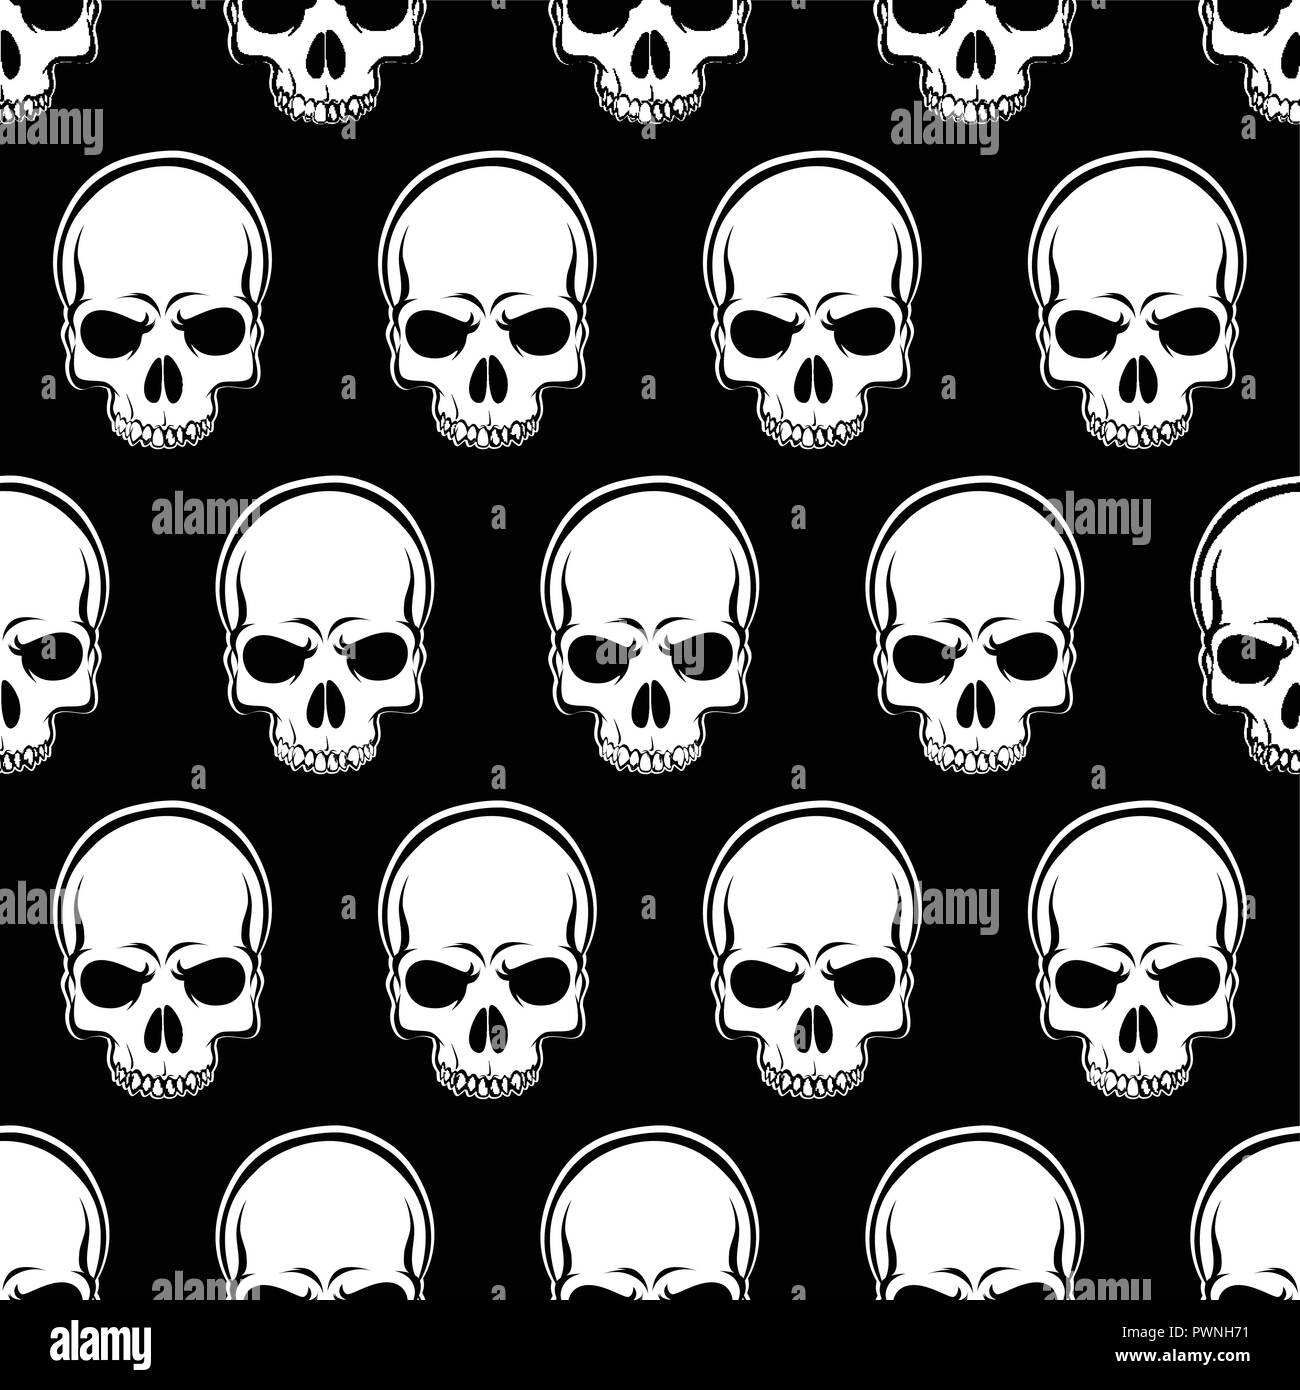 Vector Seamless Looped Pattern with Skulls in black and white - Stock Image